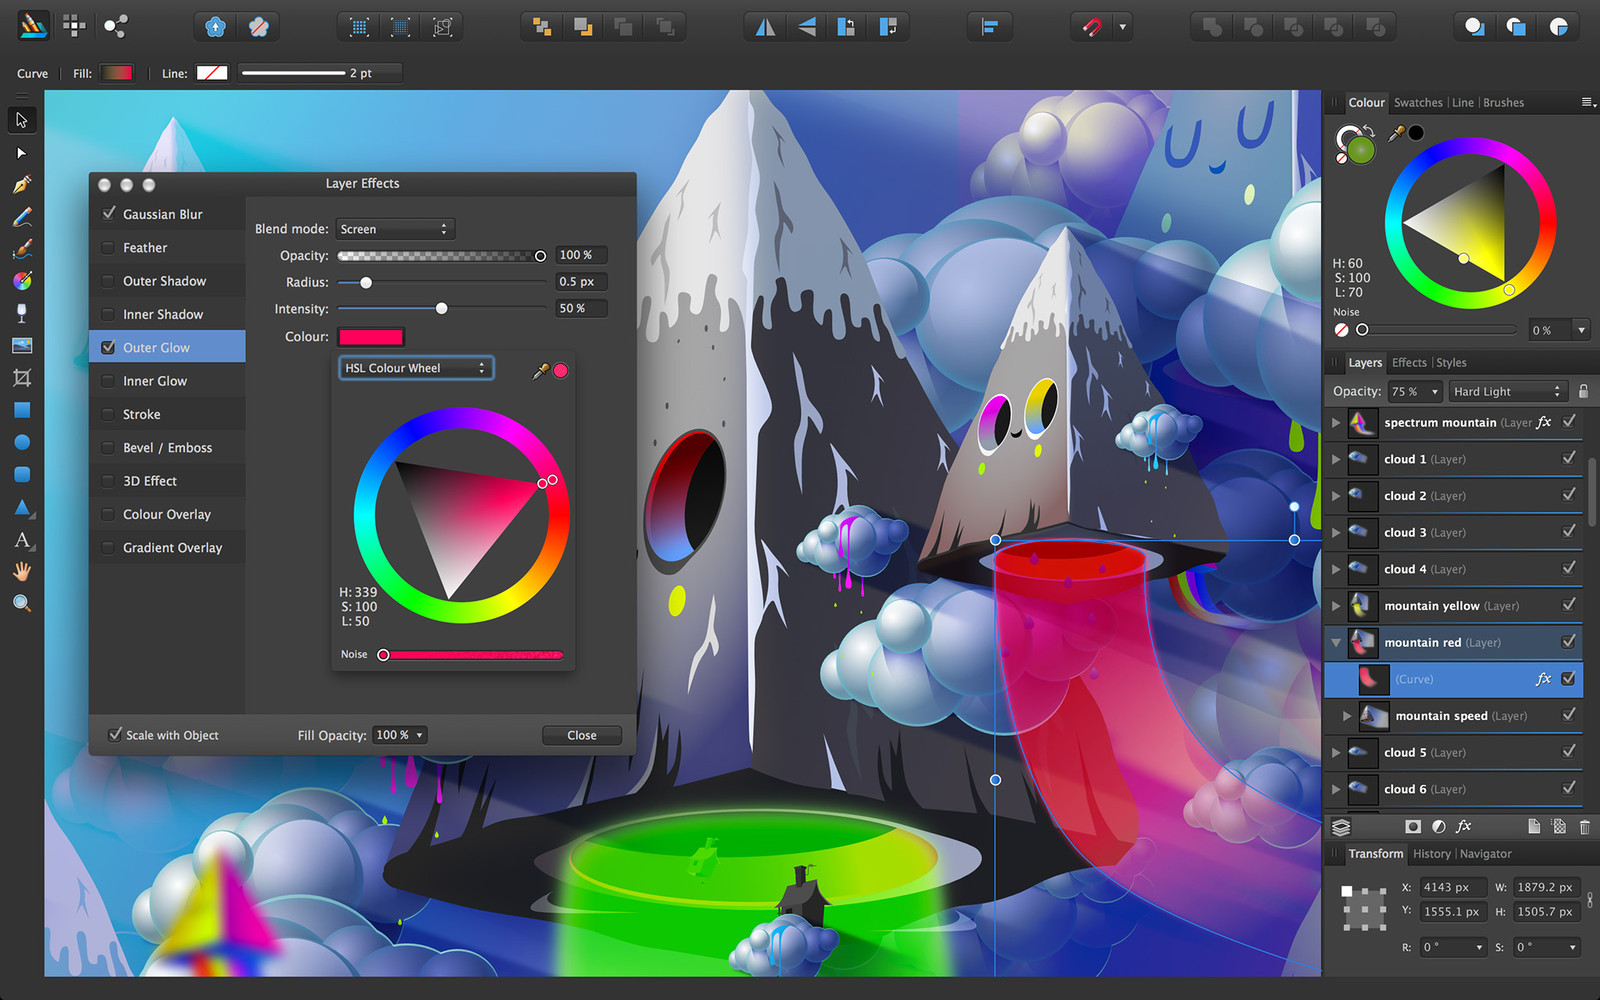 Affinity Designer is a new graphics design suite available for Mac